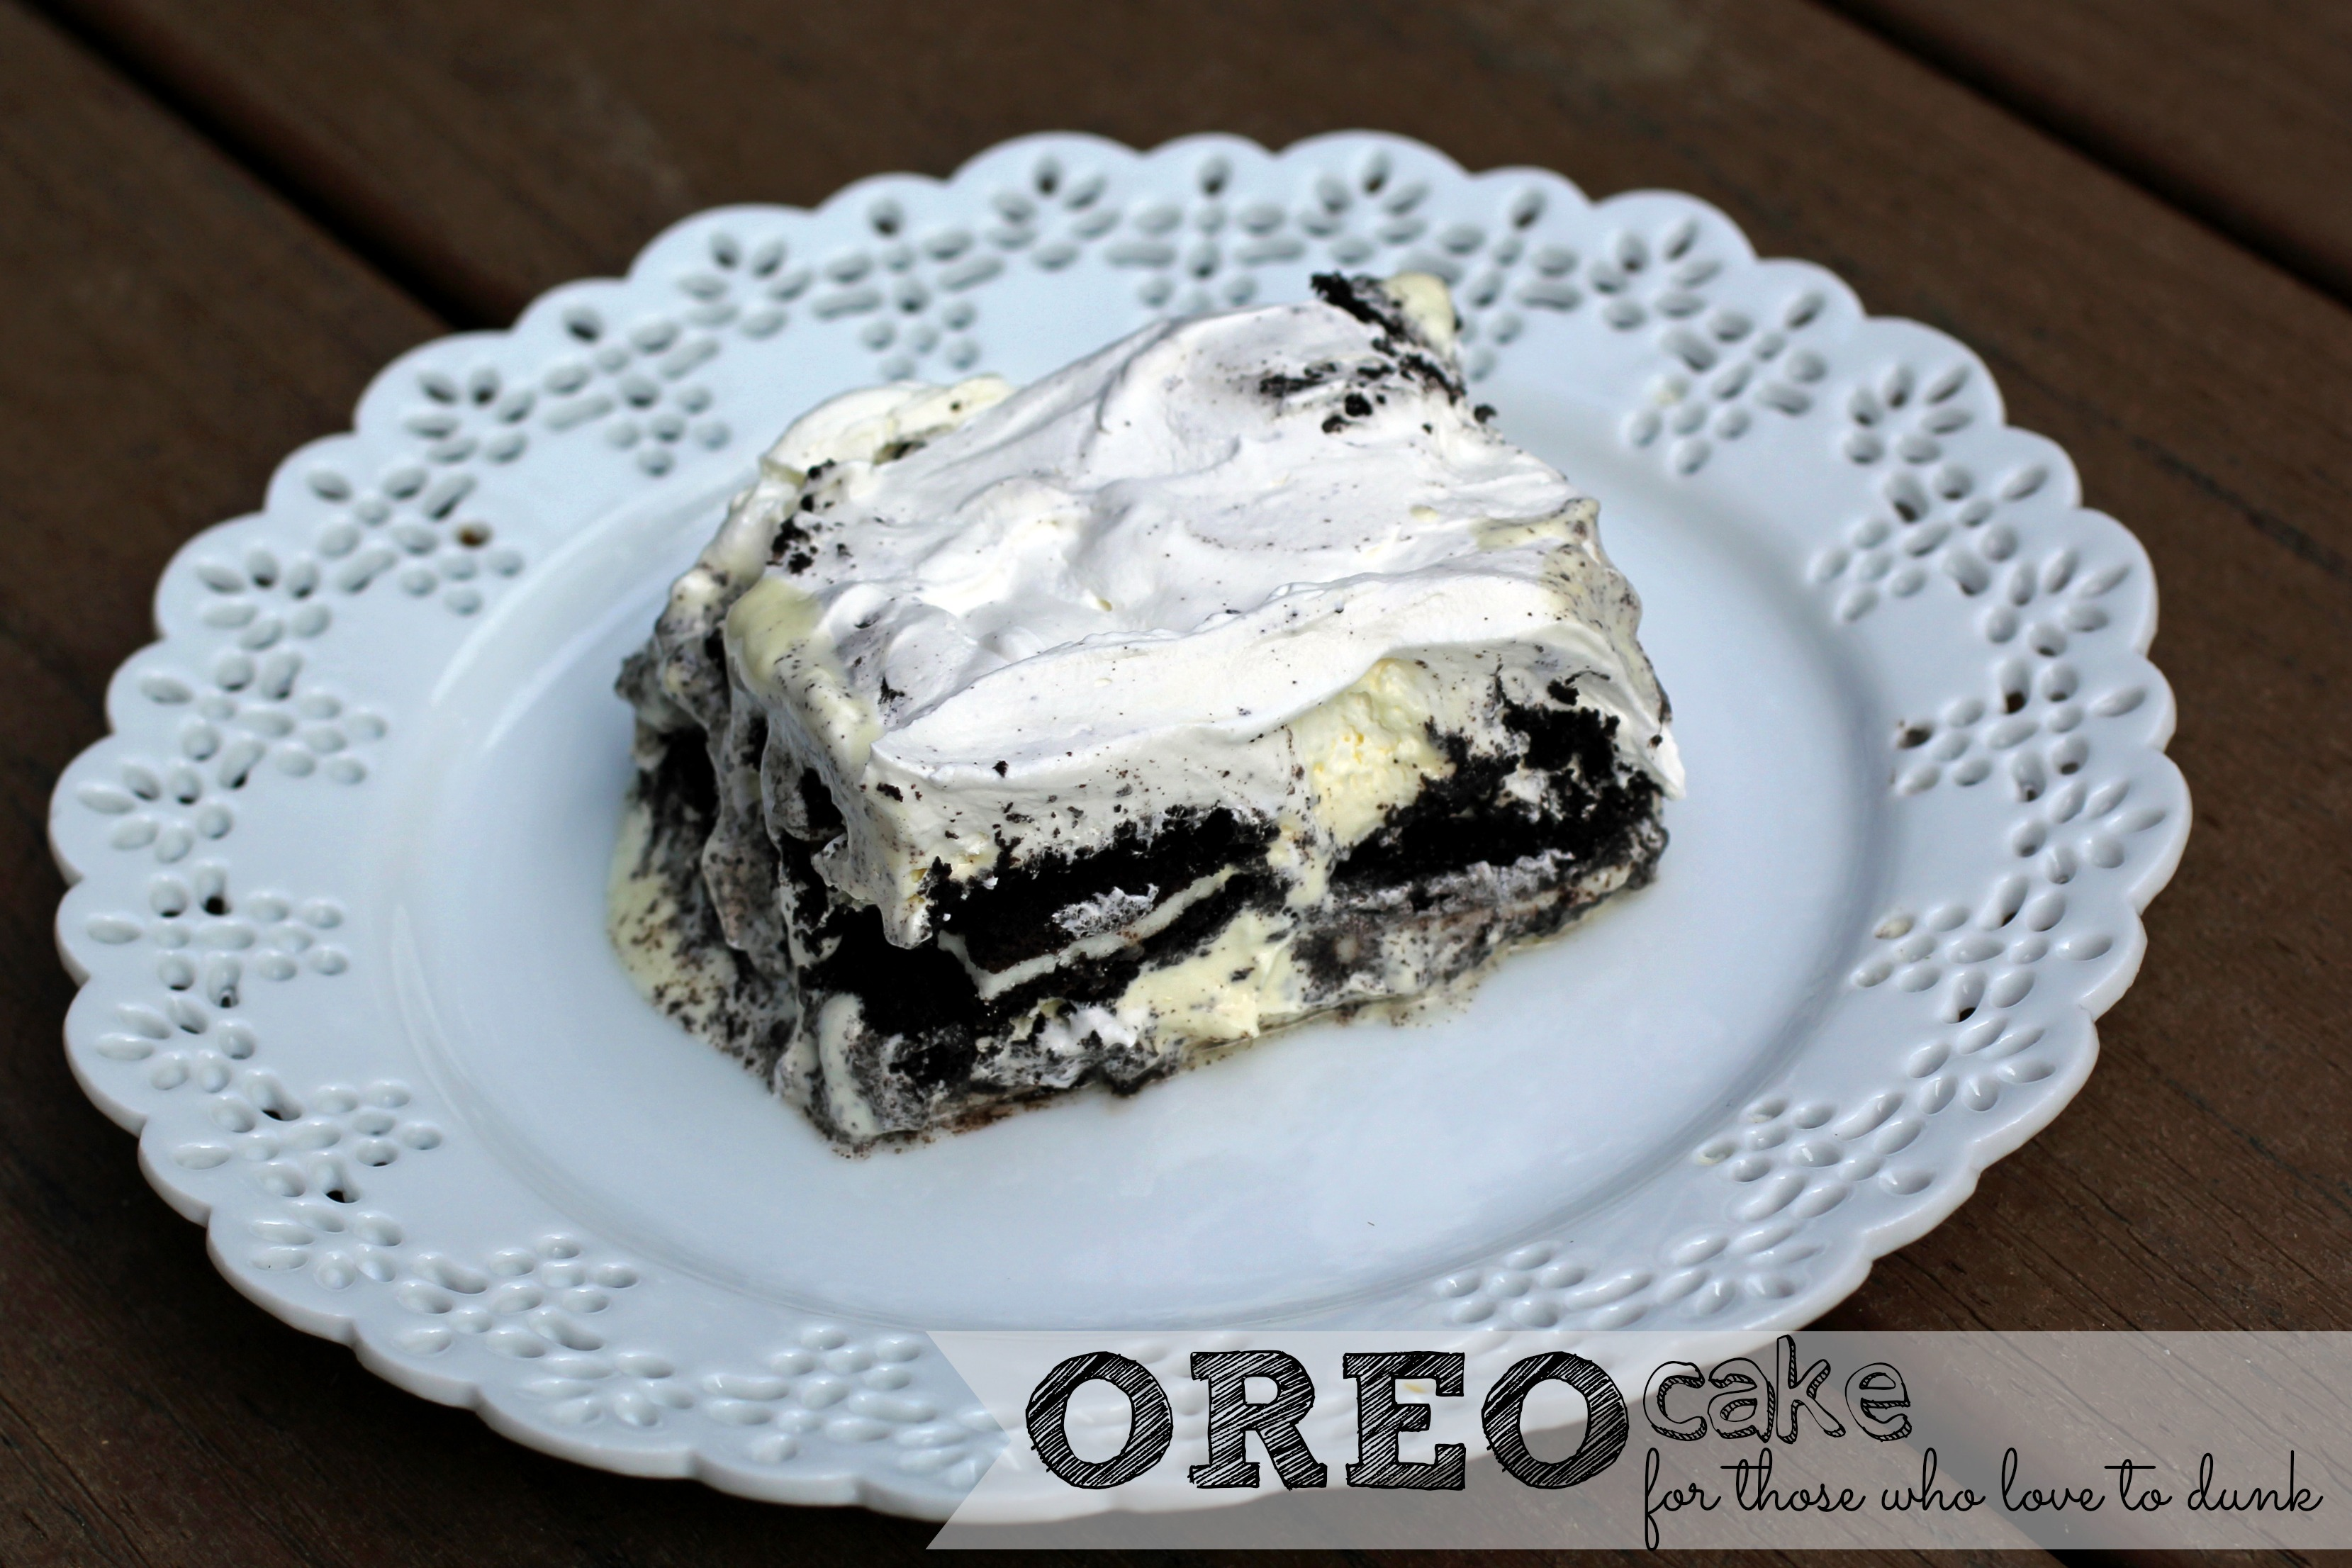 OREO Cake Creation | Five Wooden Spoons